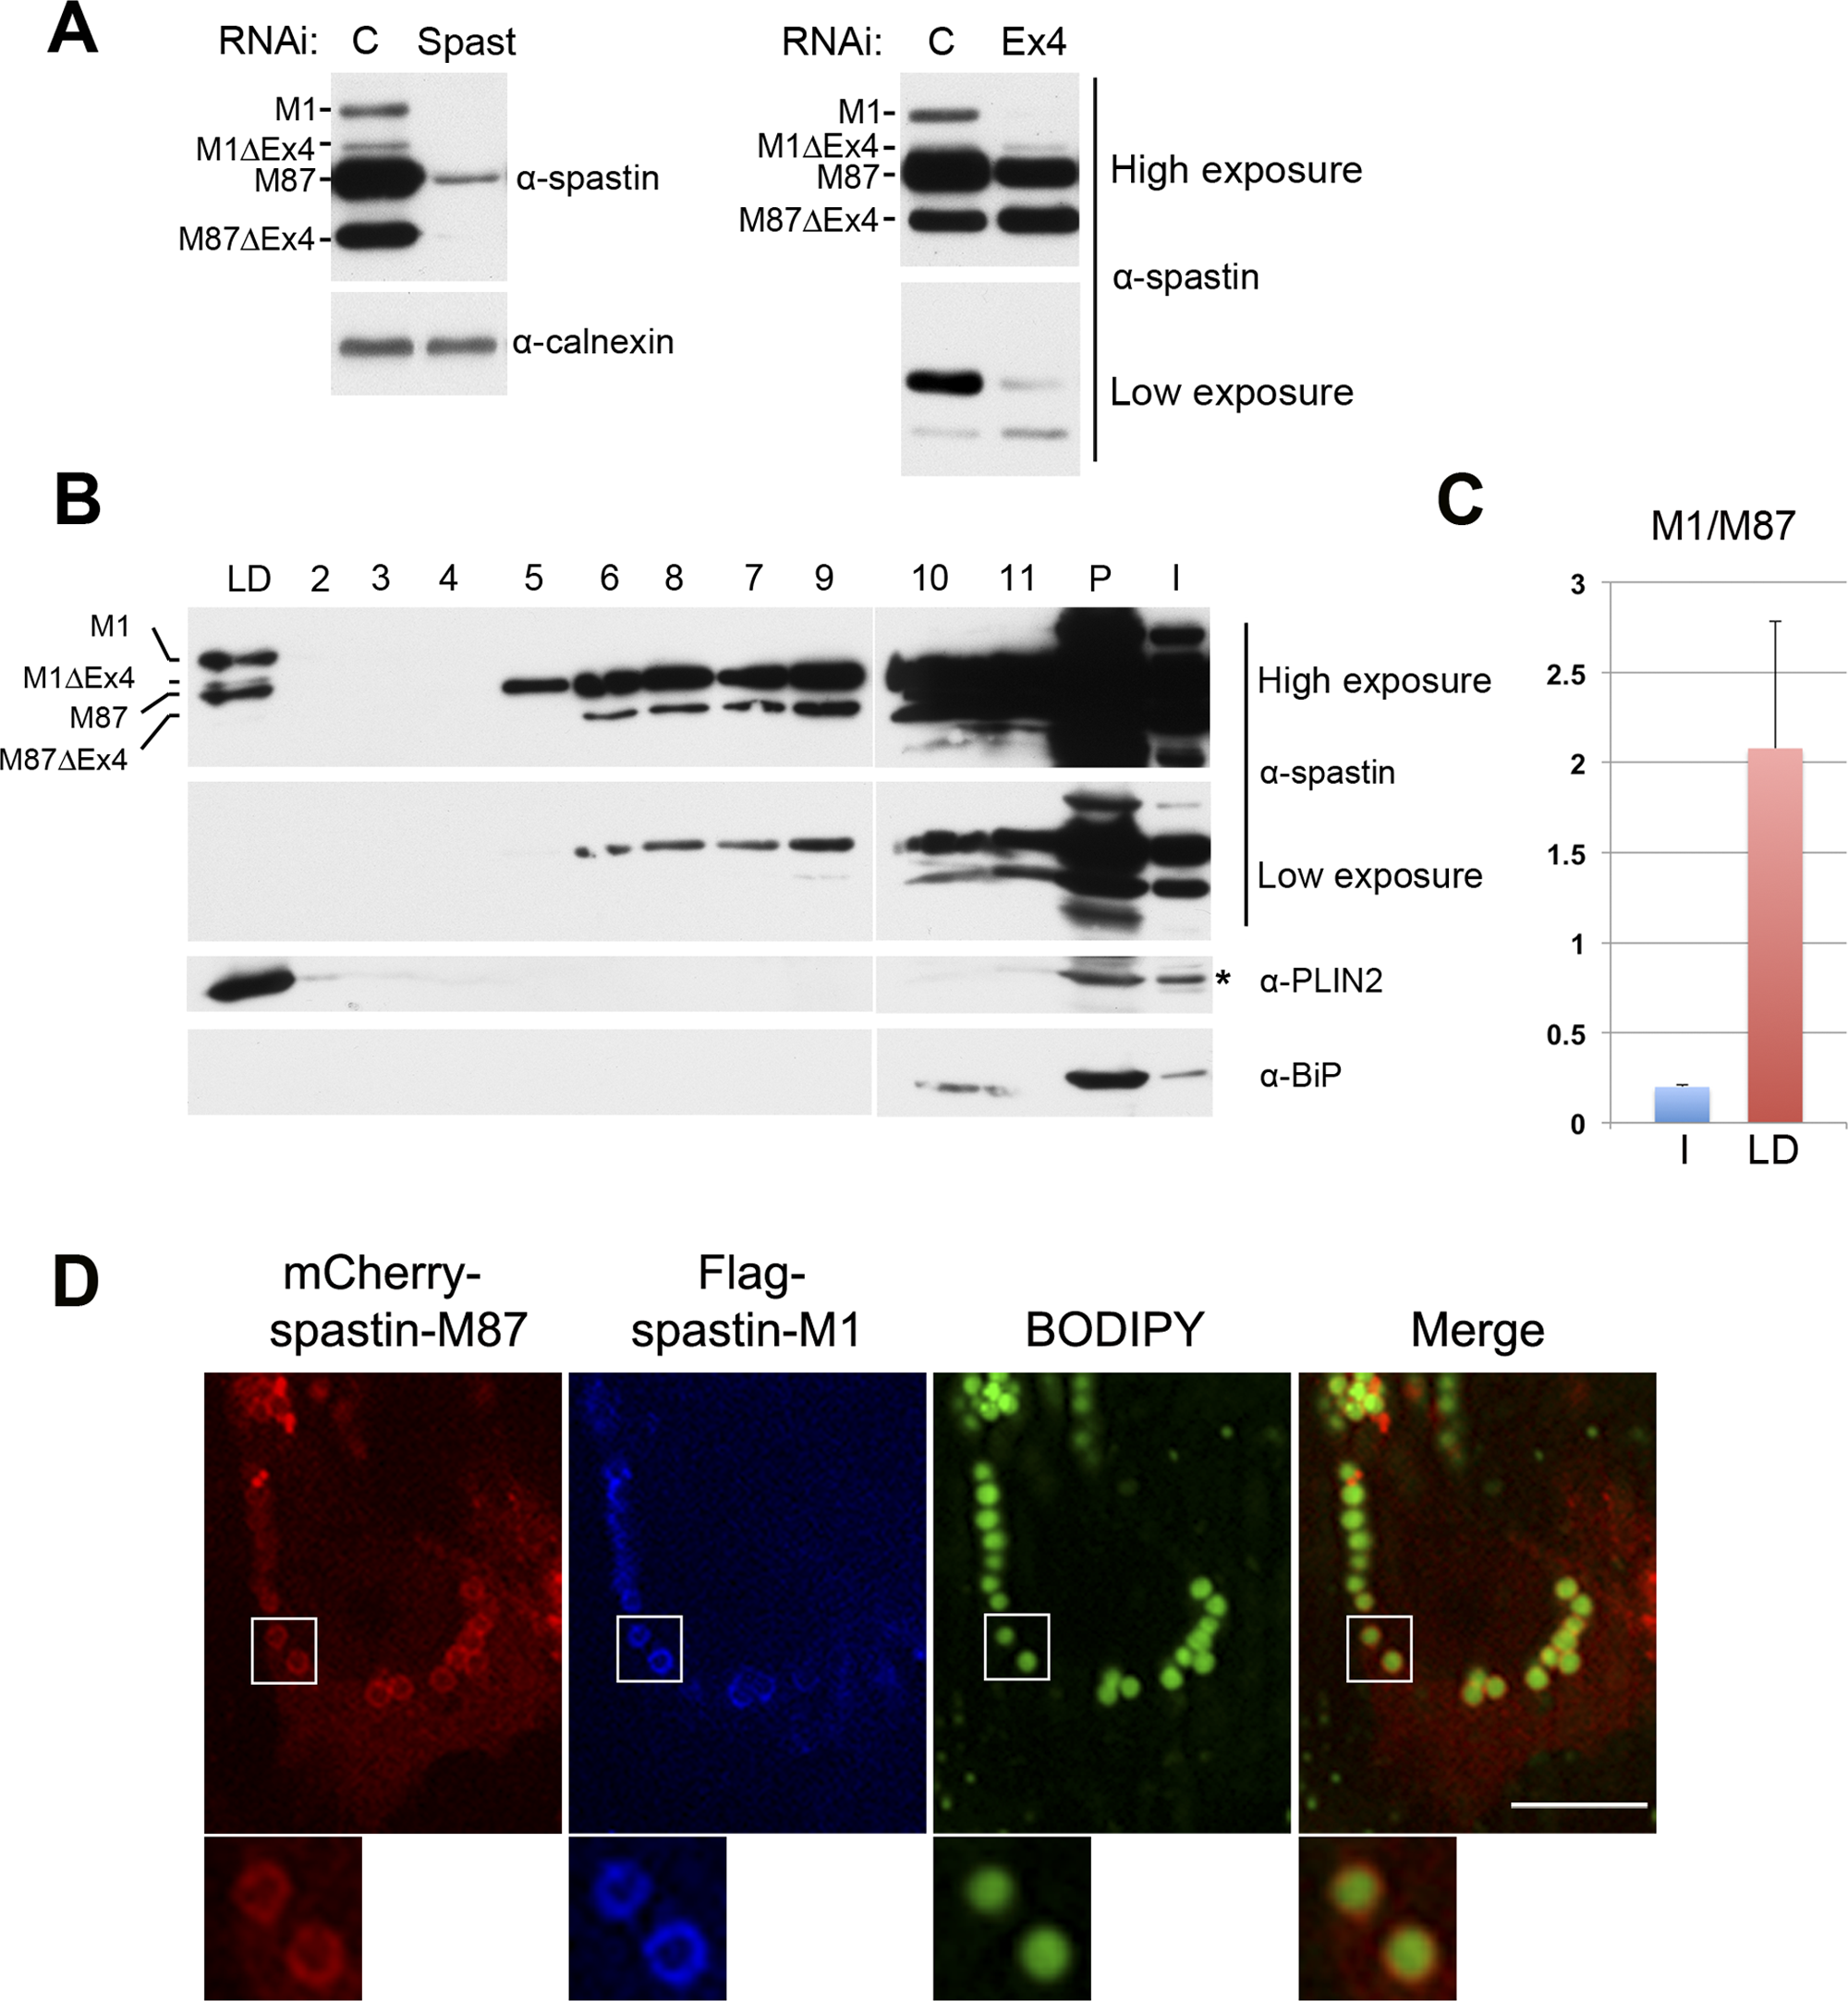 Endogenous spastin-M1 is detected in purified LDs.